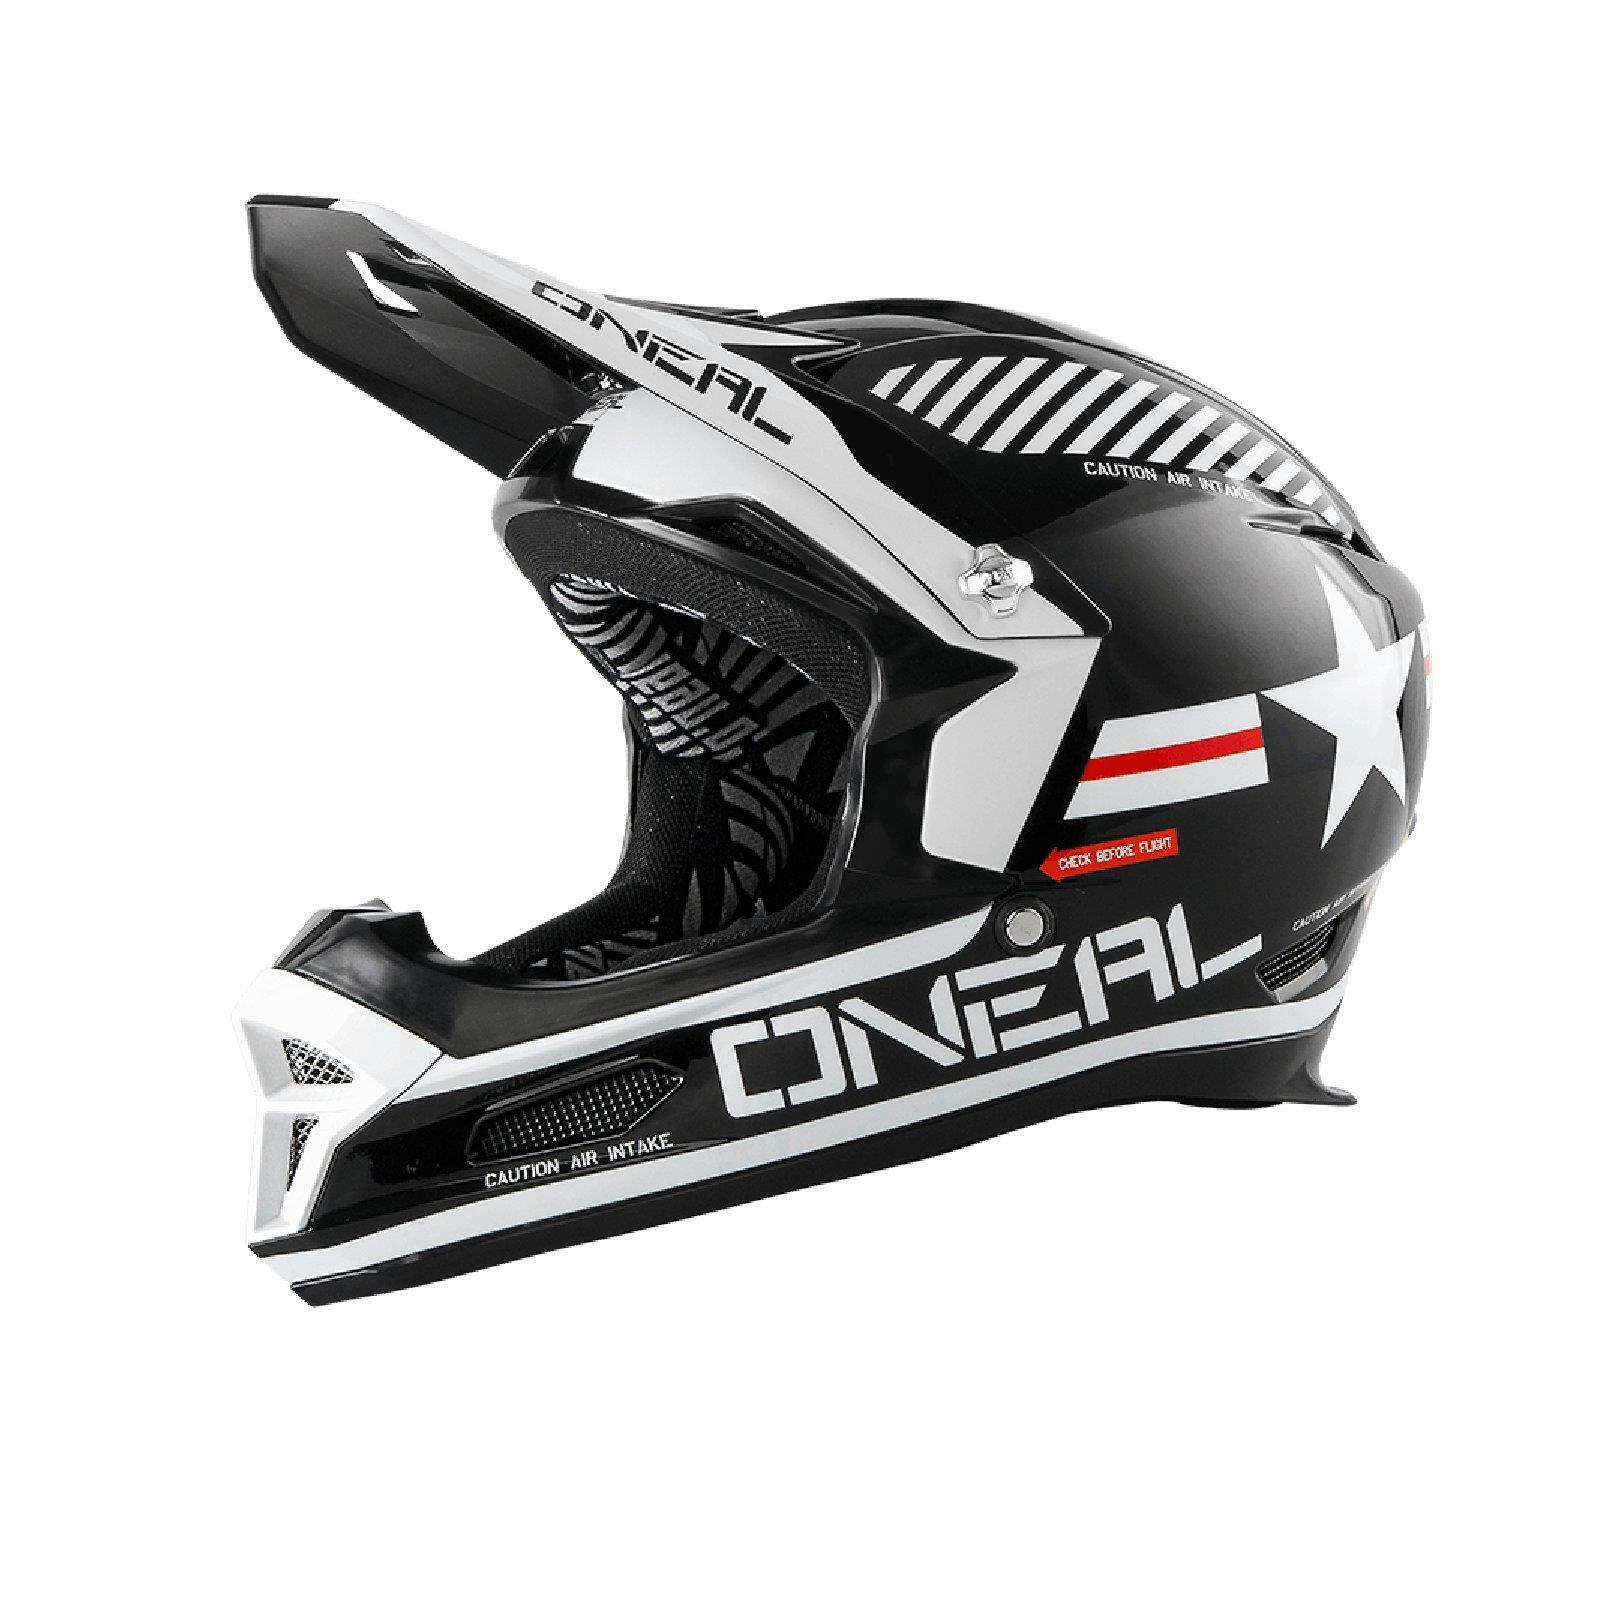 ONeal Fury RL Helm Afterburner Action Cam MTB Fullface DH Mountainbike Fahrrad